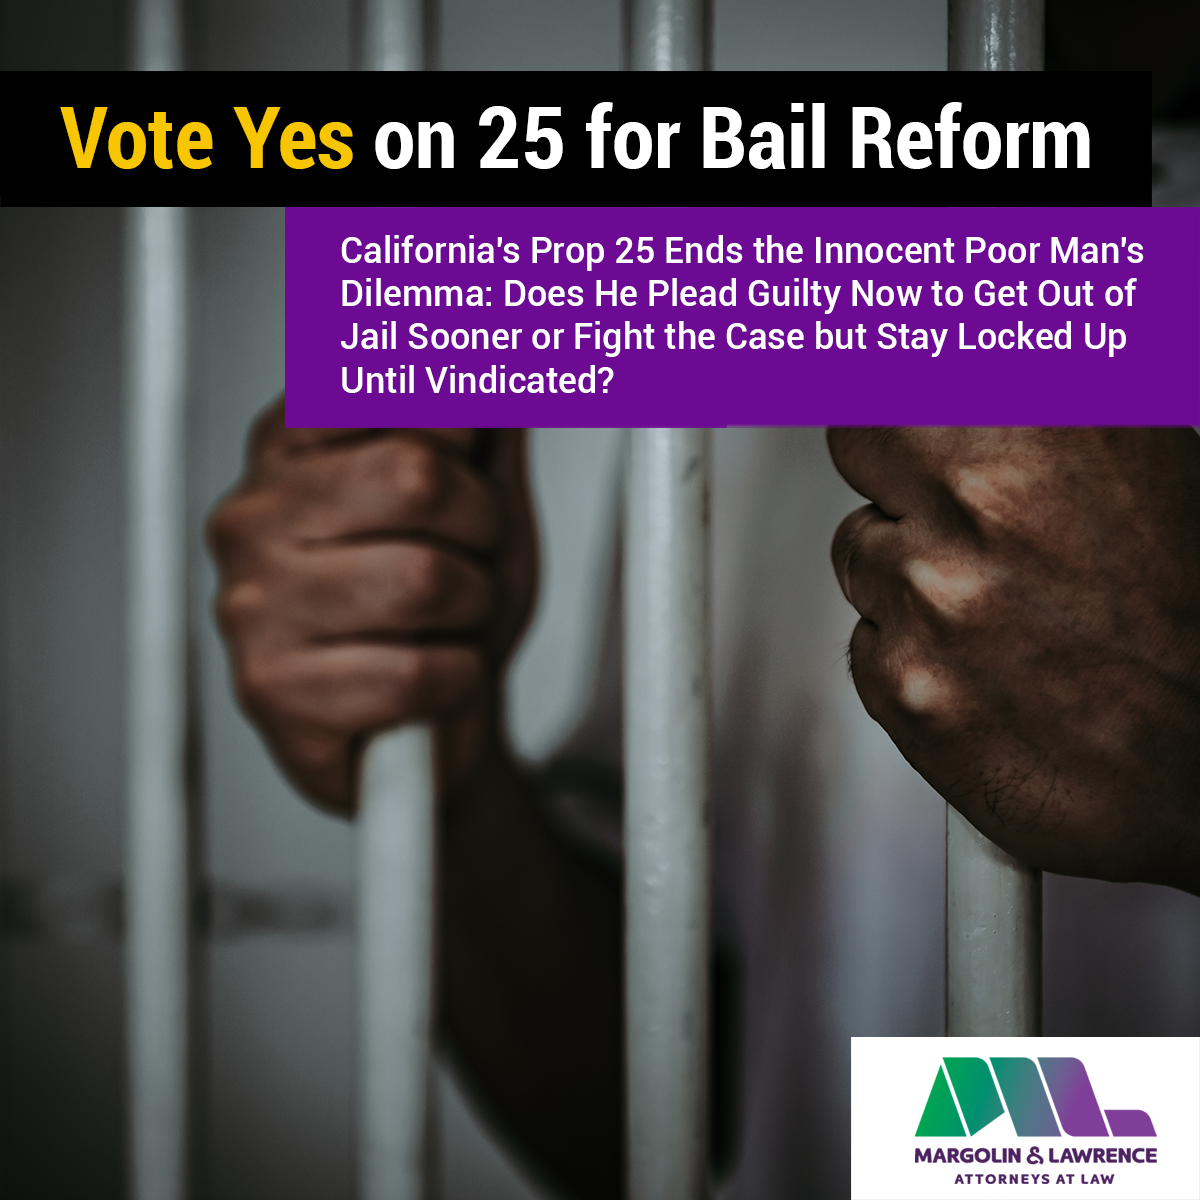 Vote Yes on 25 for Bail Reform: California's Prop 25 Ends the Innocent Poor Man's Dilemma